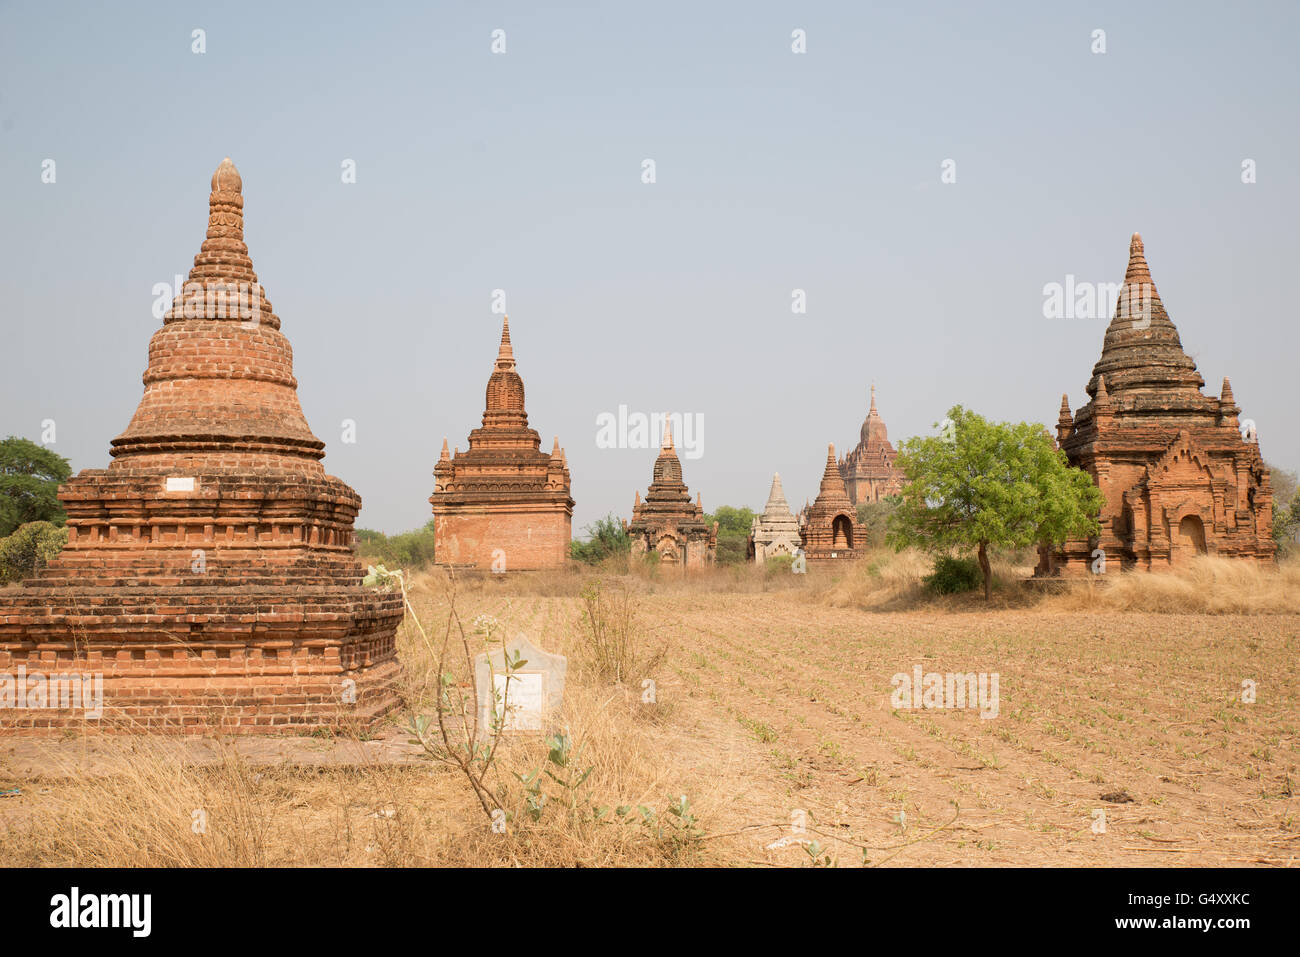 Temples of Old Bagan Archaelogical Zone, Mandalay Region, Myanmar - Stock Image